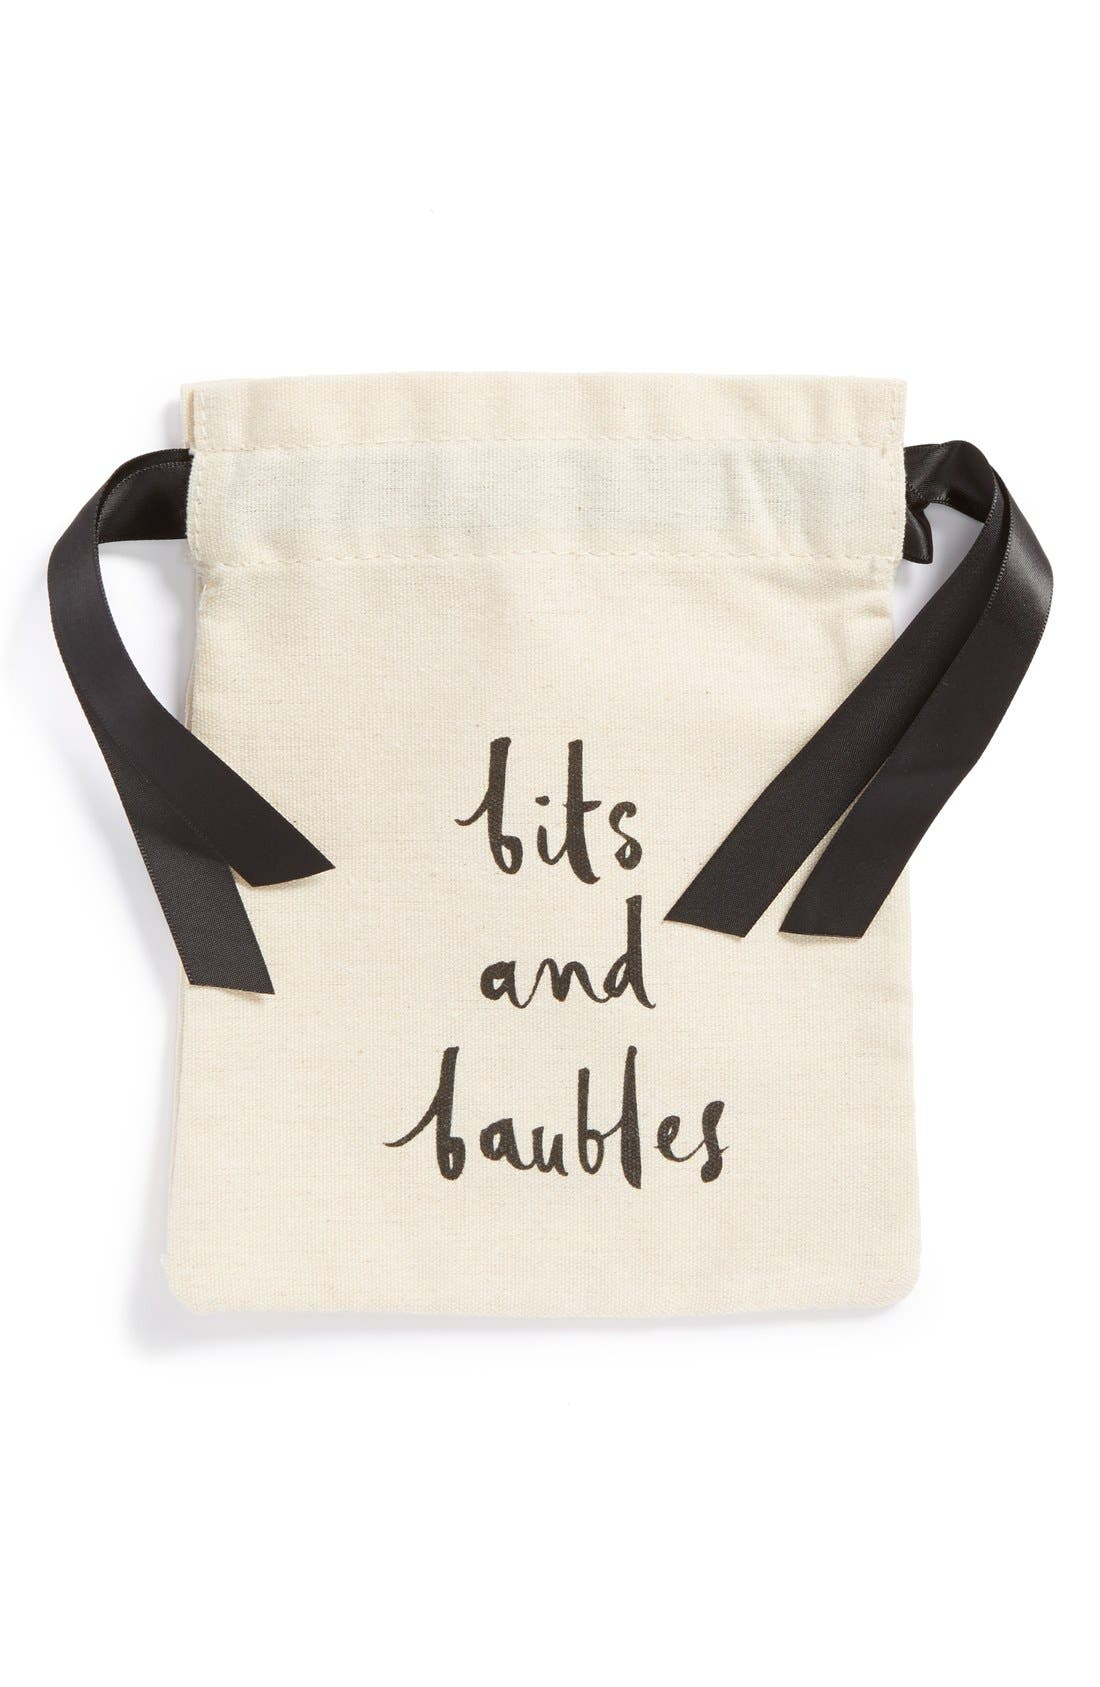 kate spade new york 'bits and baubles' jewelry pouch